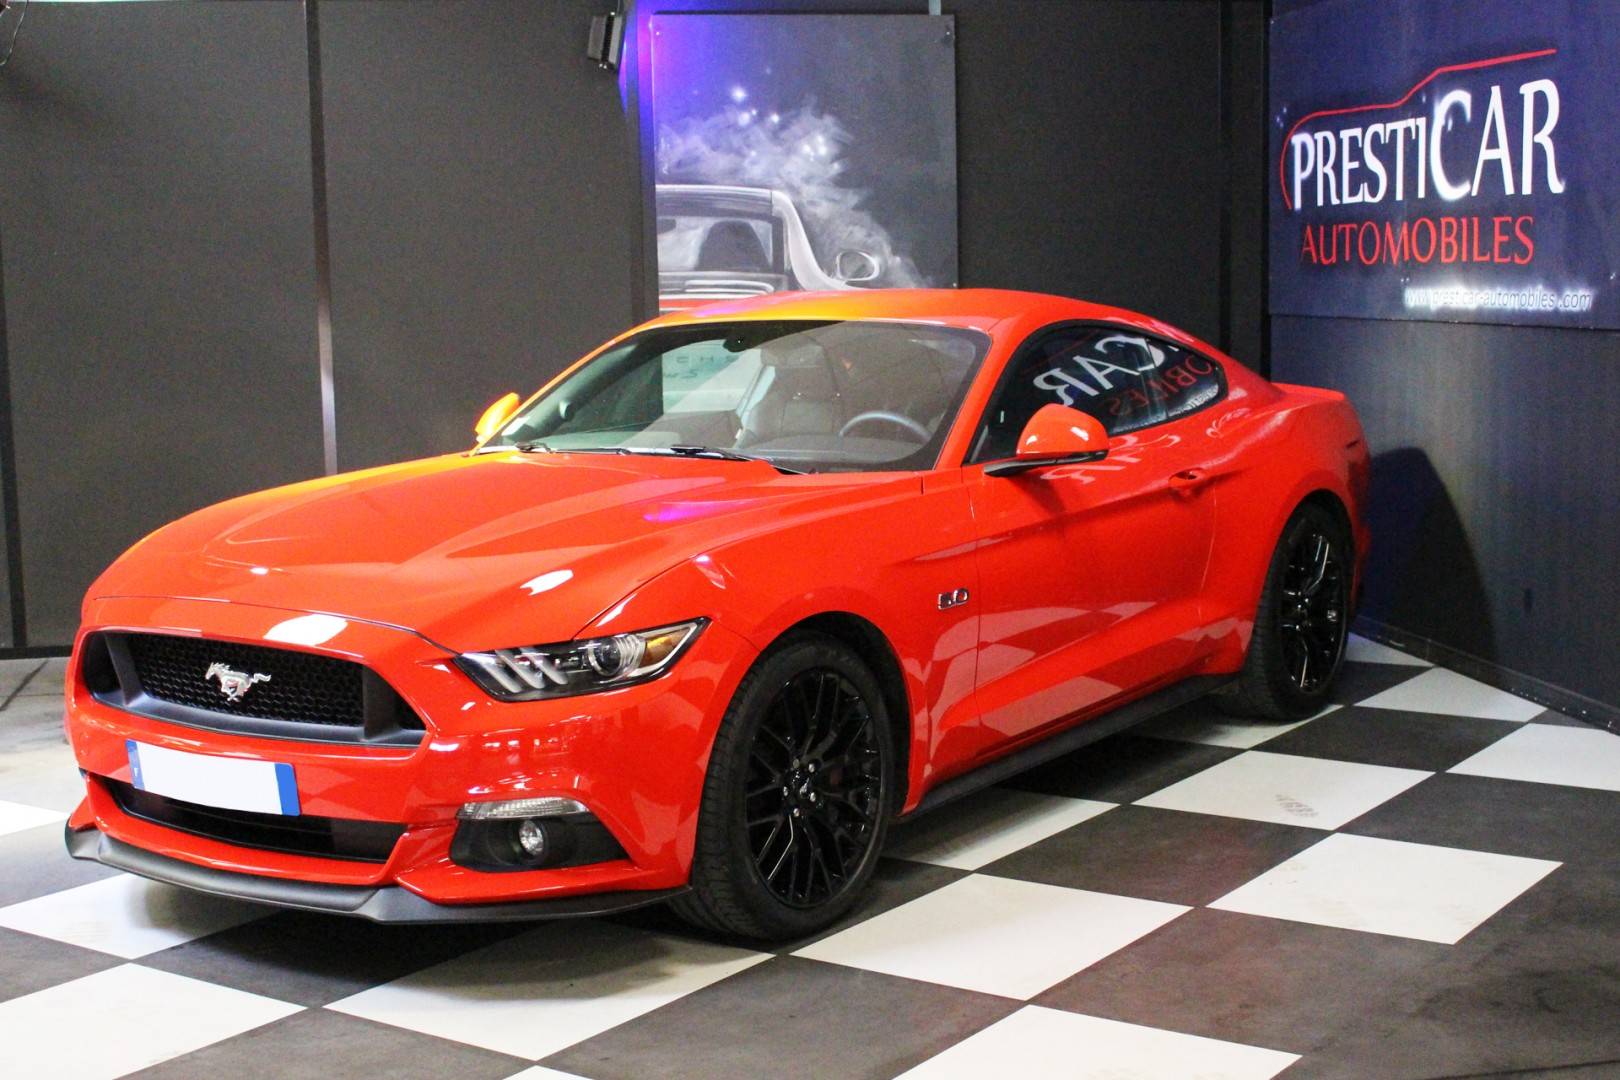 ford mustang gt fastback 5 0 v8 421ch presticar automobiles